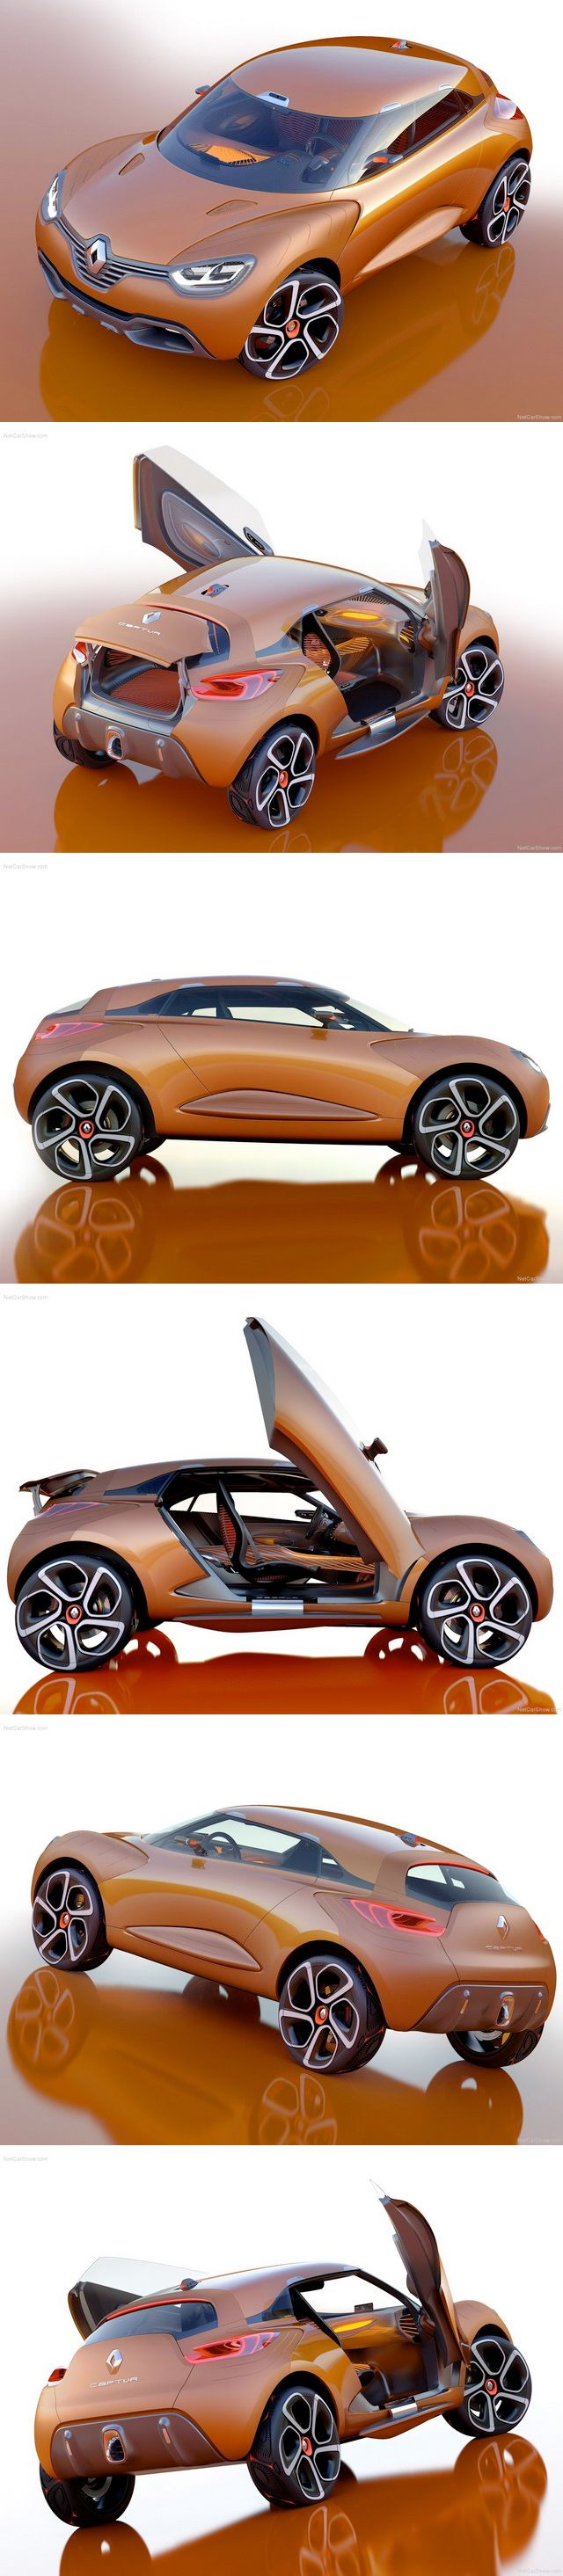 ♂ Renault Captur Concept (2011) From http://www.conceptcar.ee/